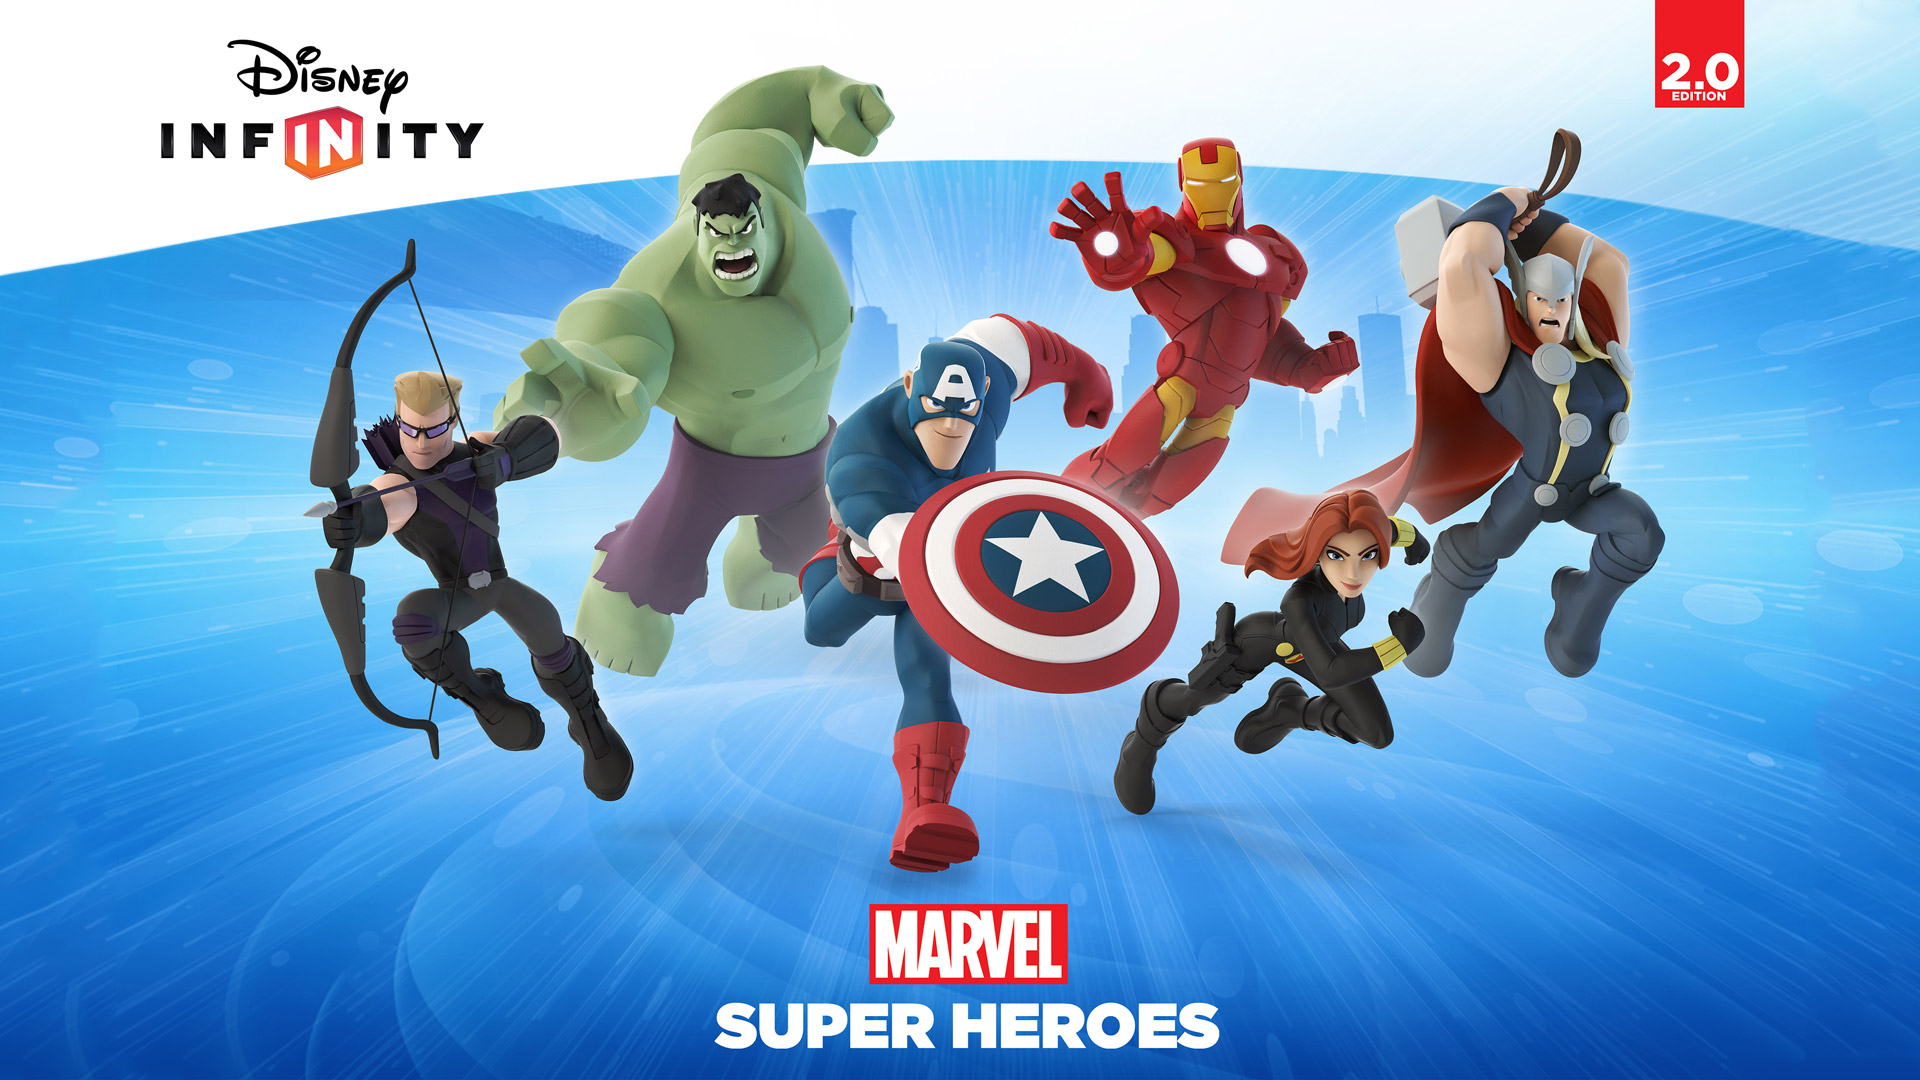 Disney Infinity Wallpaper in 1920x1080